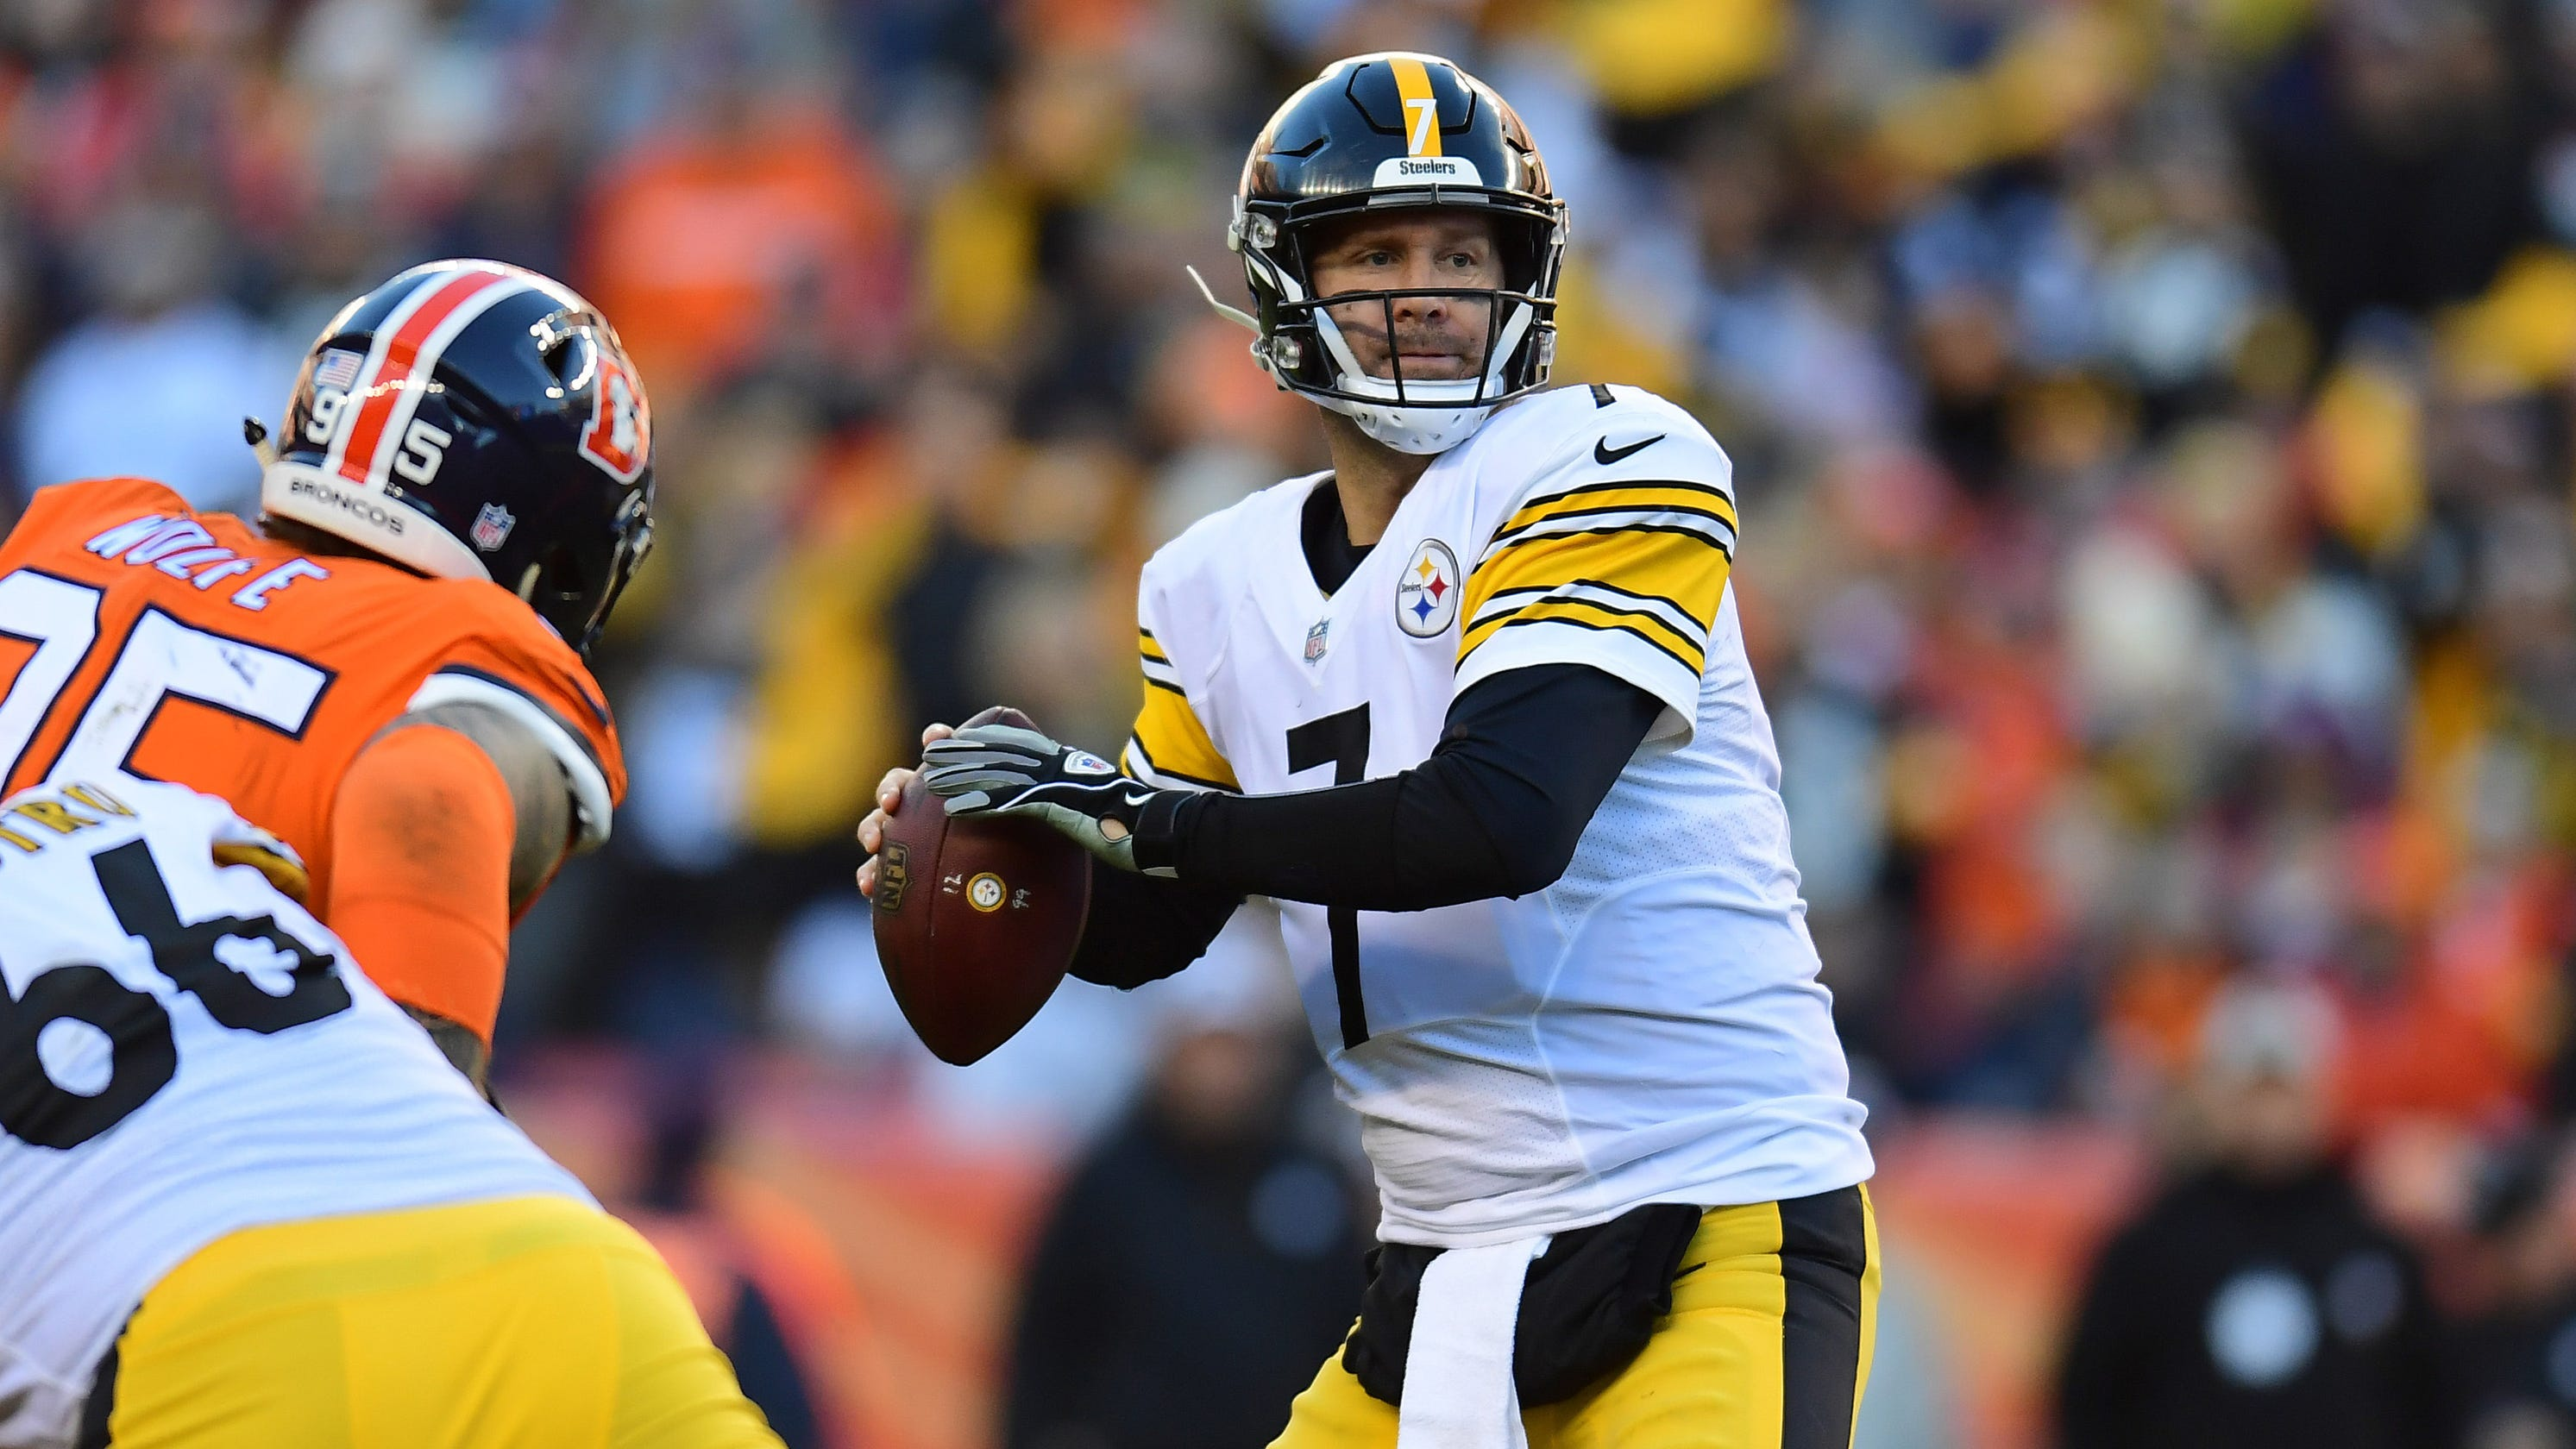 Denver Broncos at Pittsburgh Steelers: Live stream, how to watch, odds, time